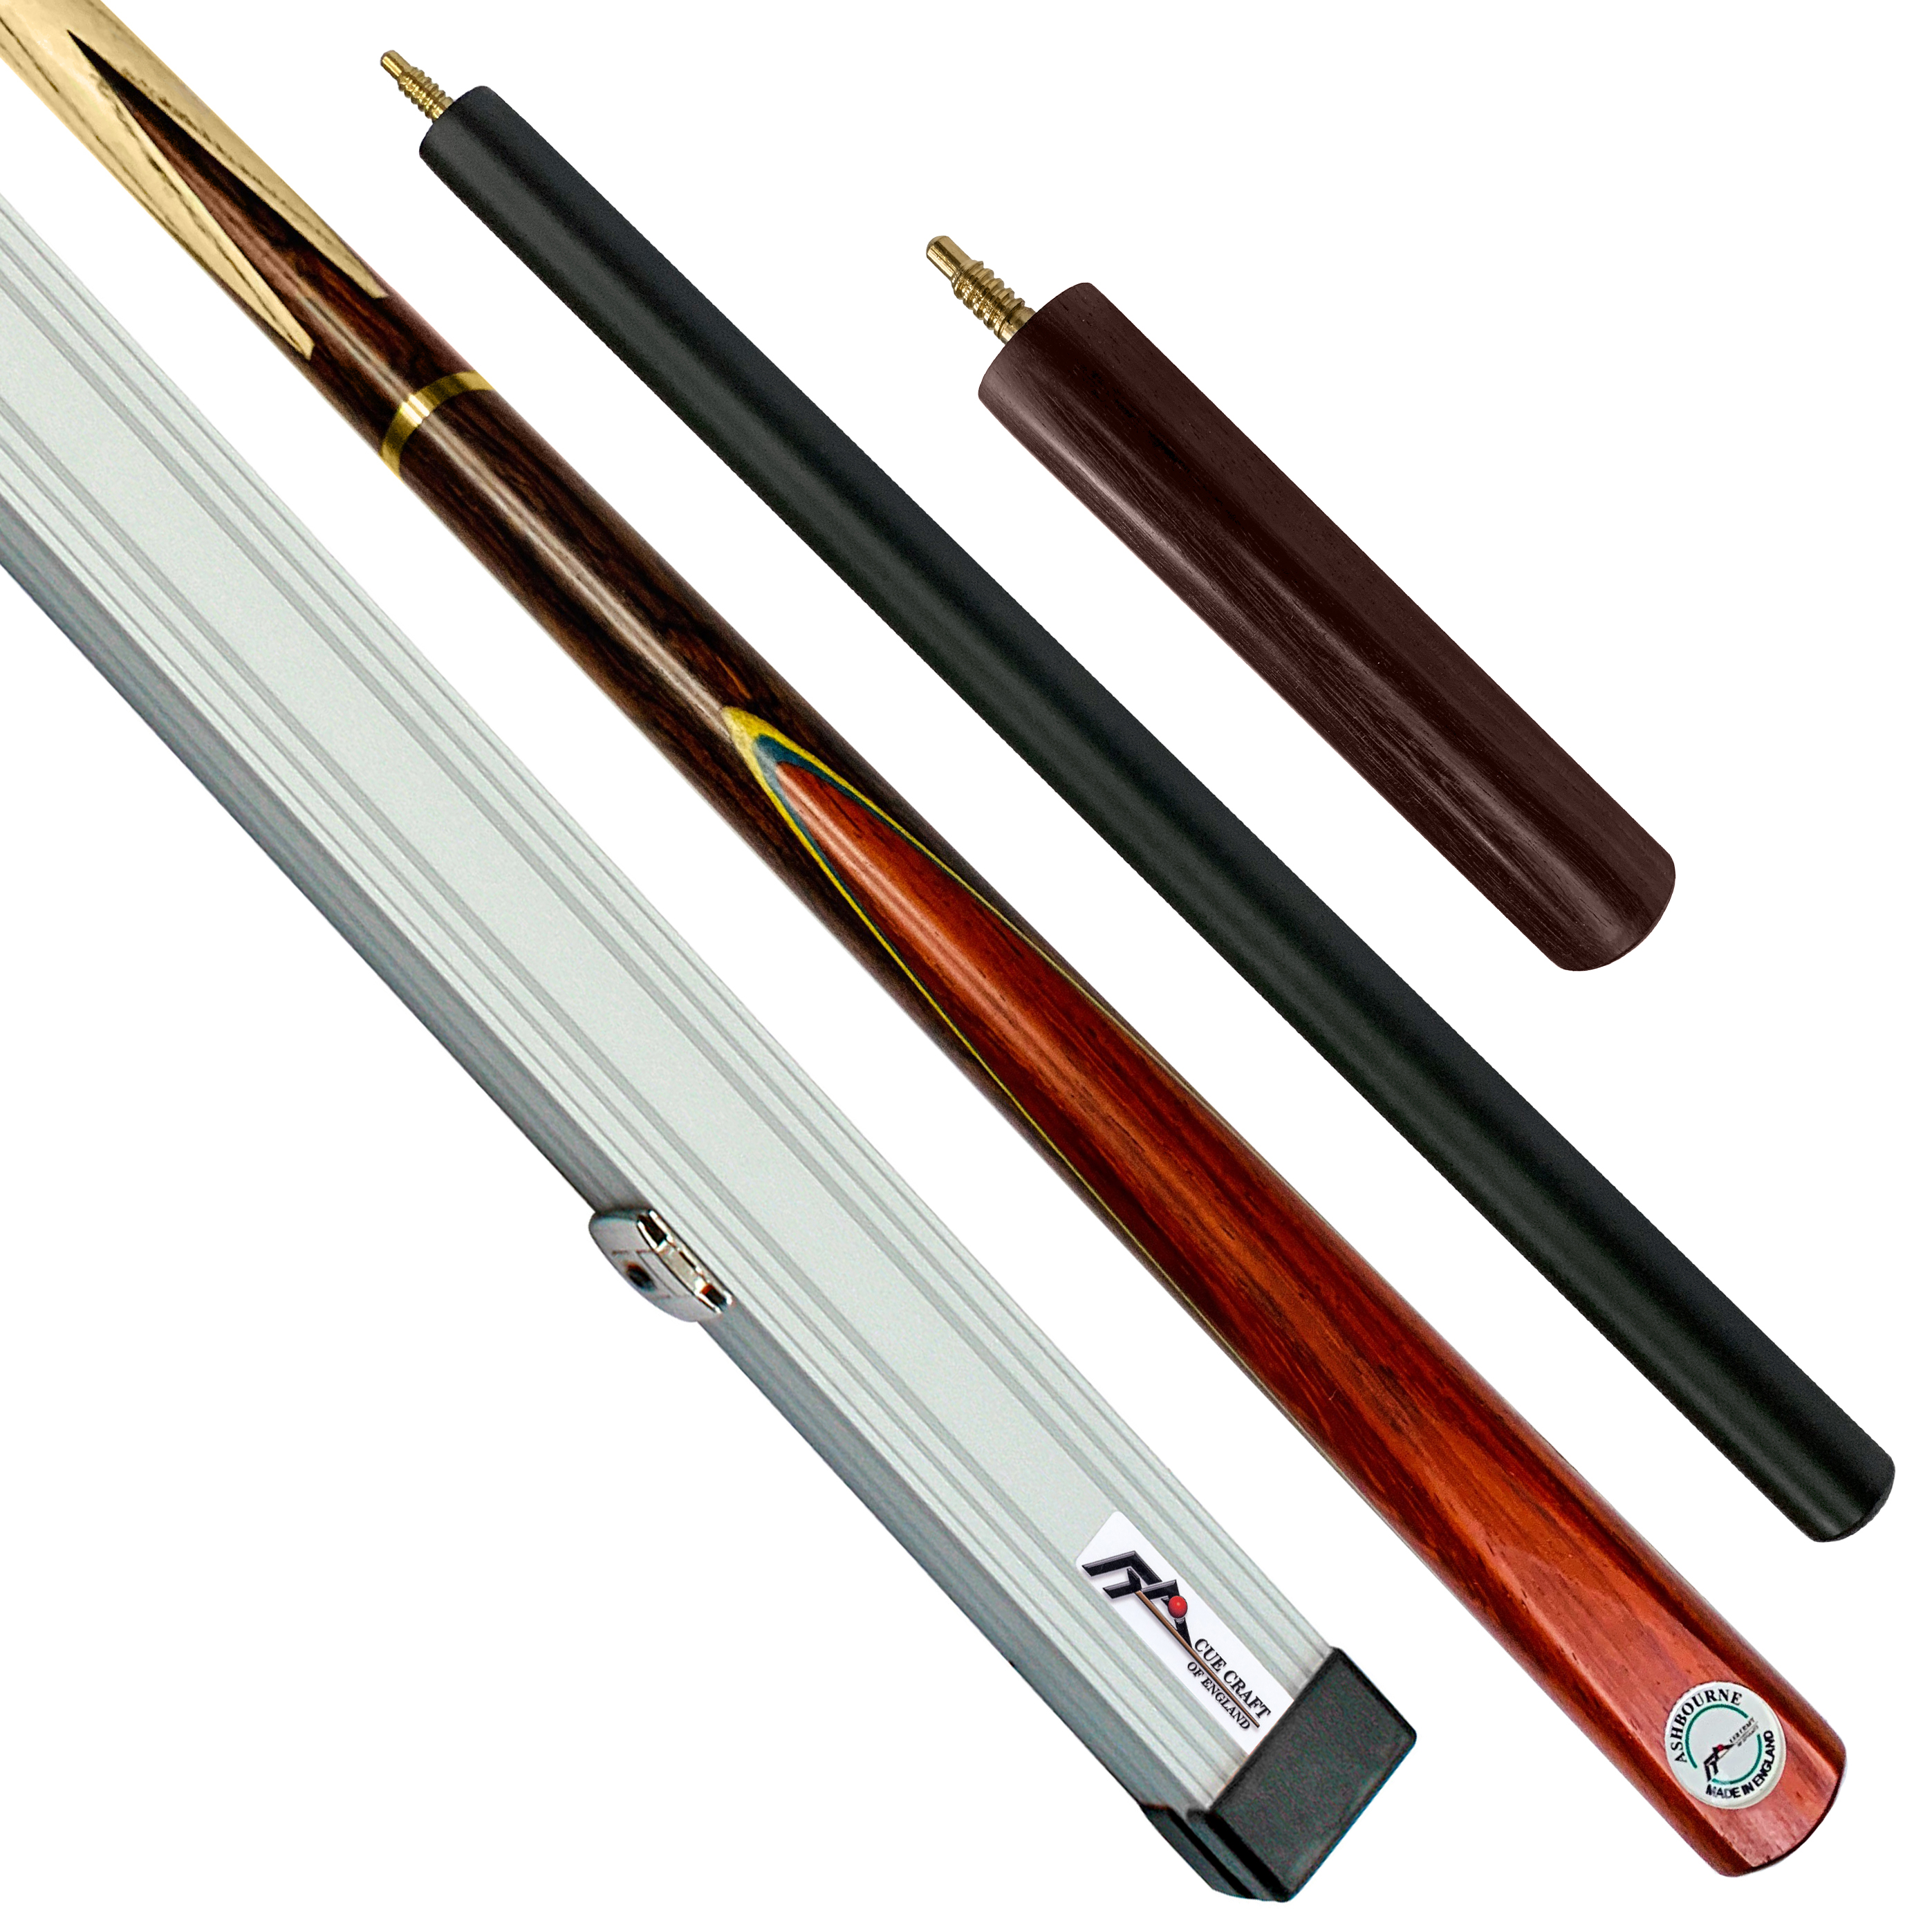 Cue Craft Ashbourne ¾ Jointed 5 Piece Snooker Cue Collection